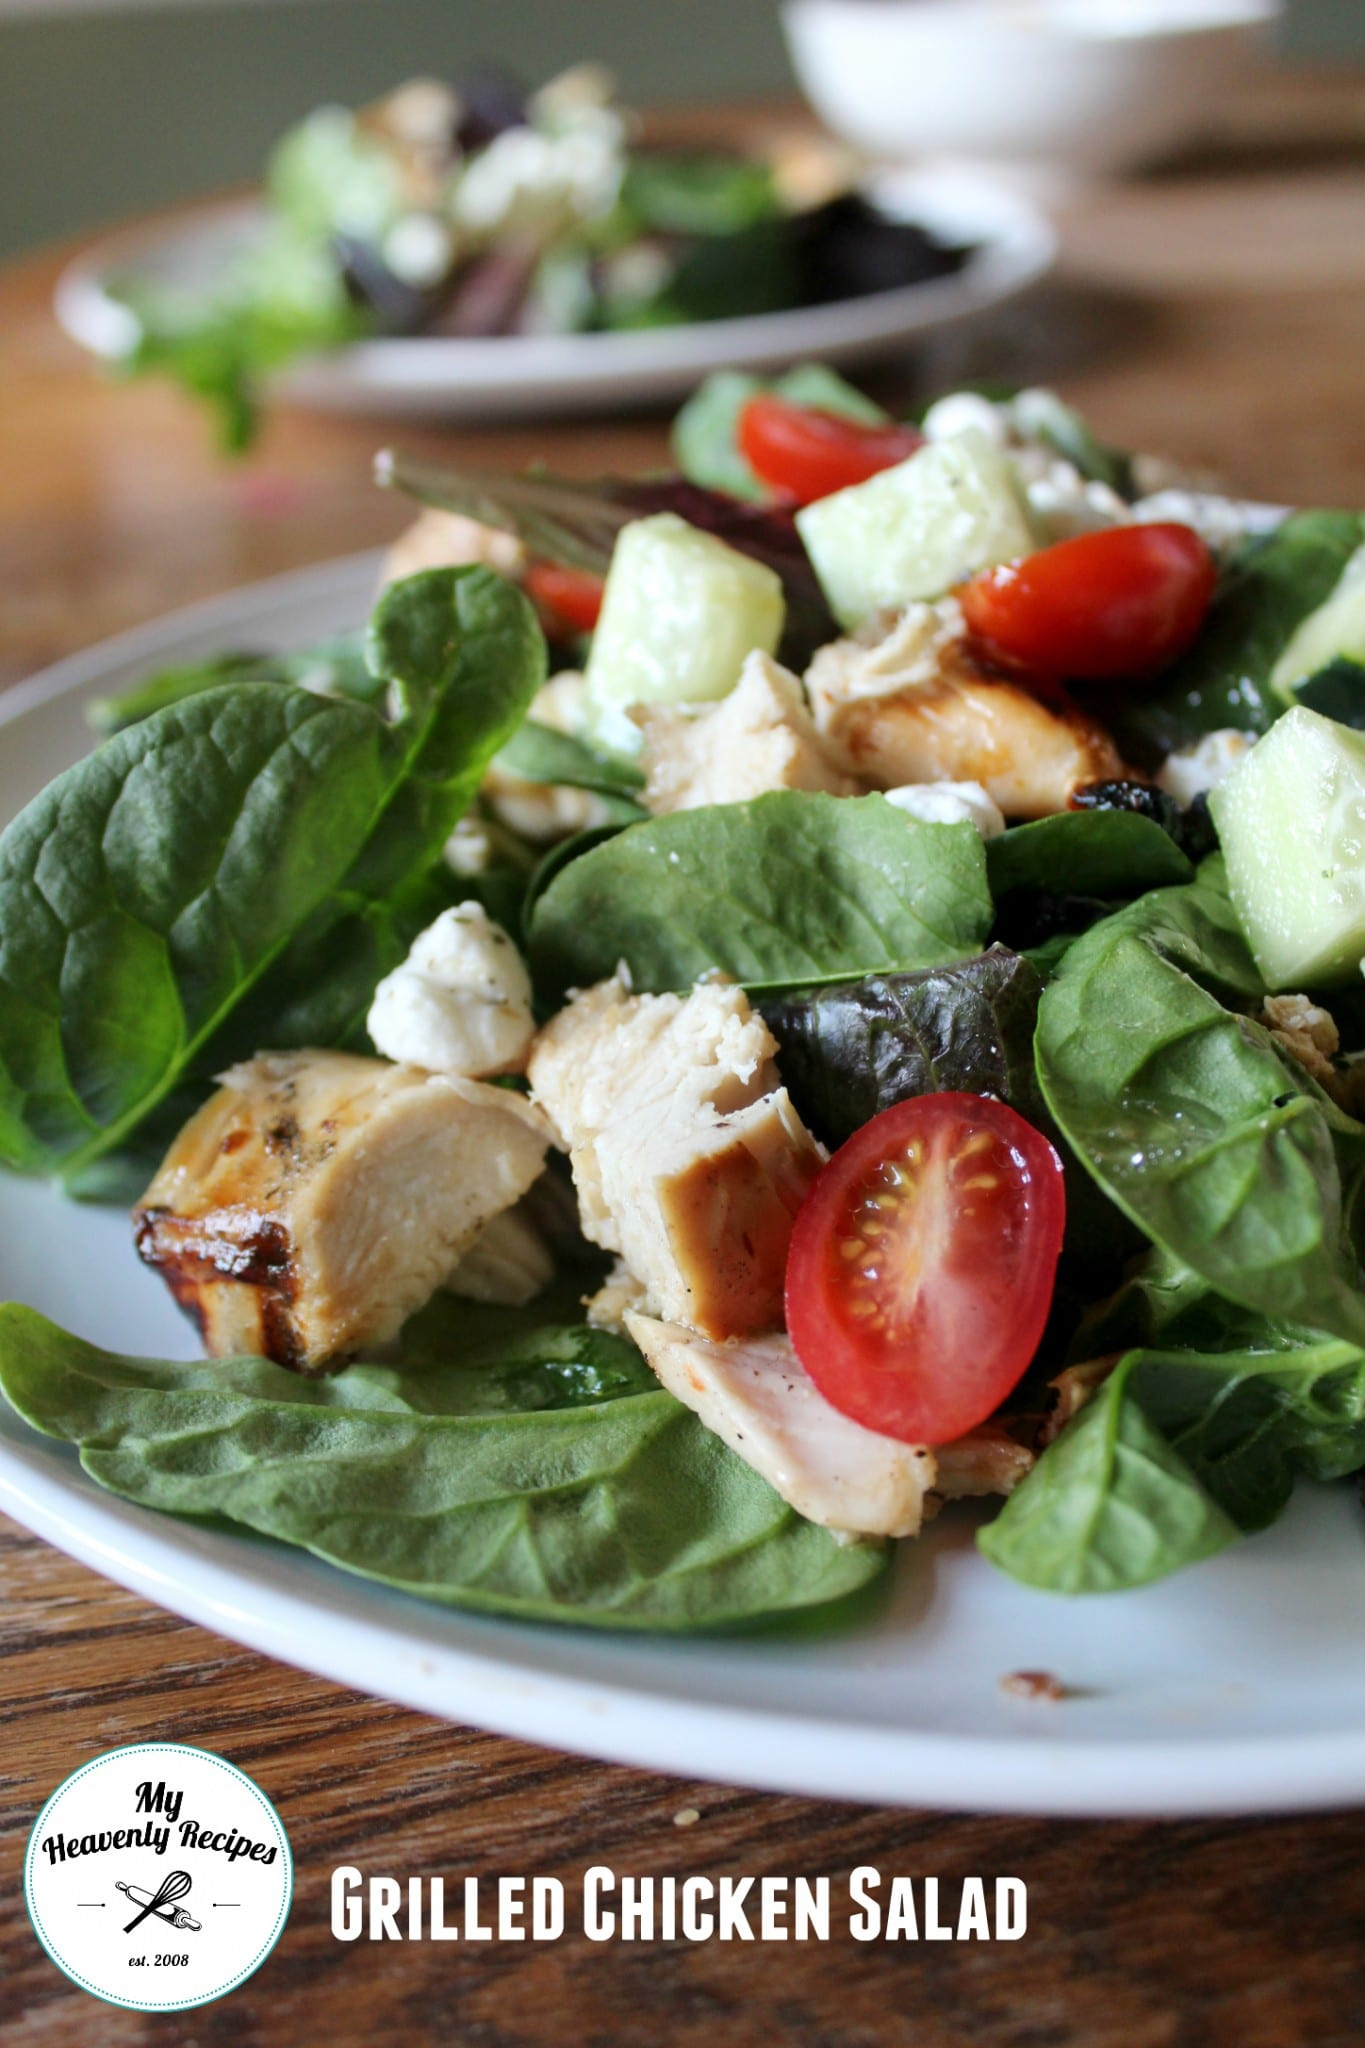 Grilled Chicken Salad with Goat Cheese - My Heavenly Recipes